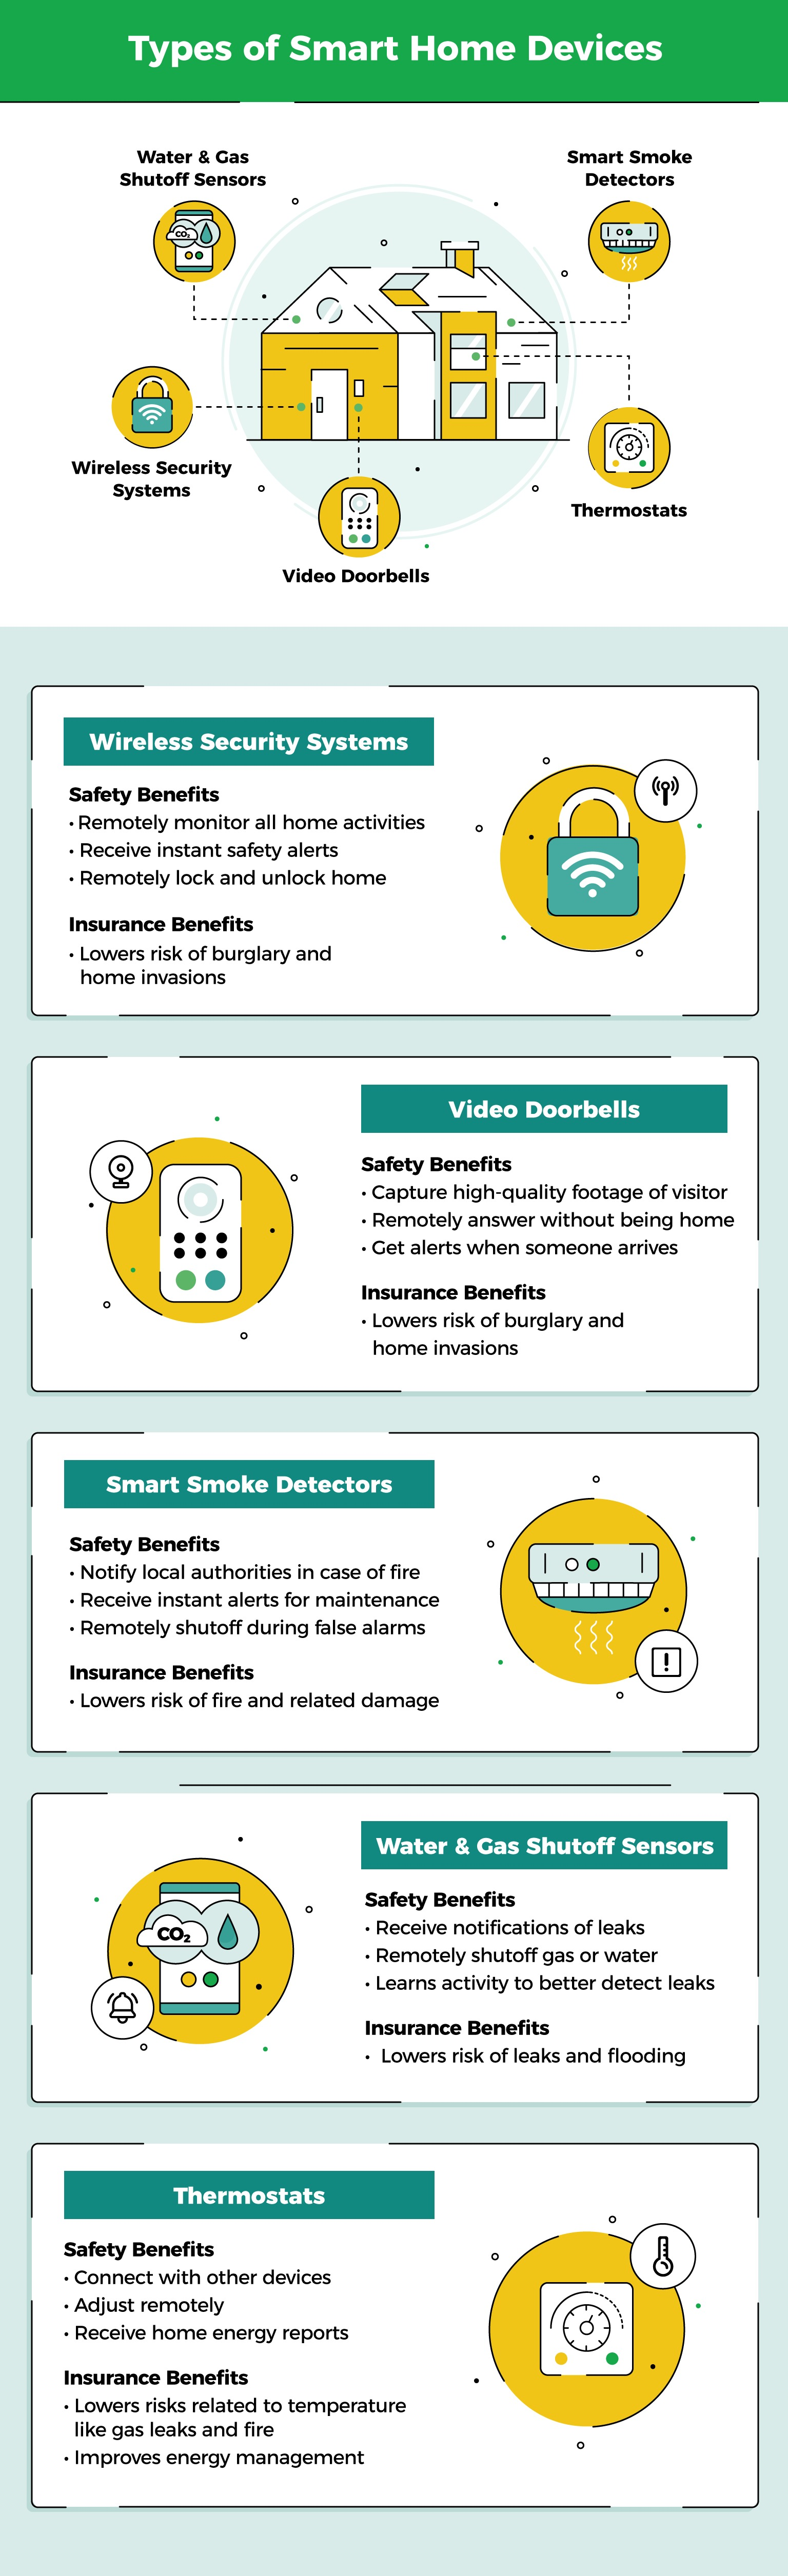 types of smart home discounts including security, thermostats, smoke detectors, and other home sensors.